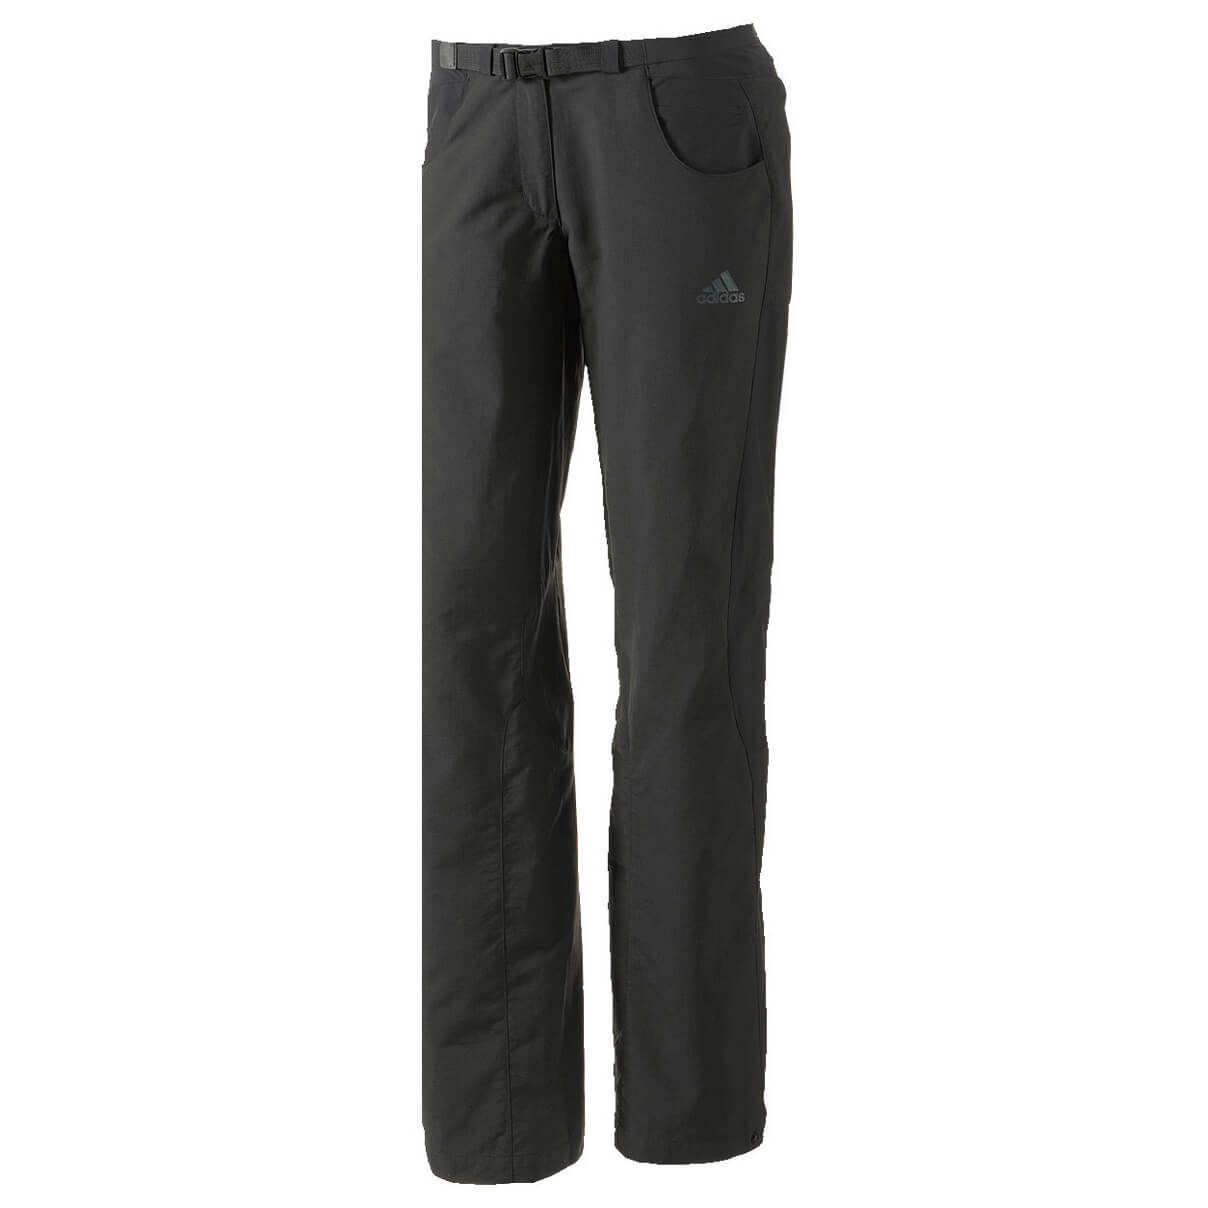 Model Lundhags  Women39s Antjah Pant  Trekking Pants  Free UK Delivery